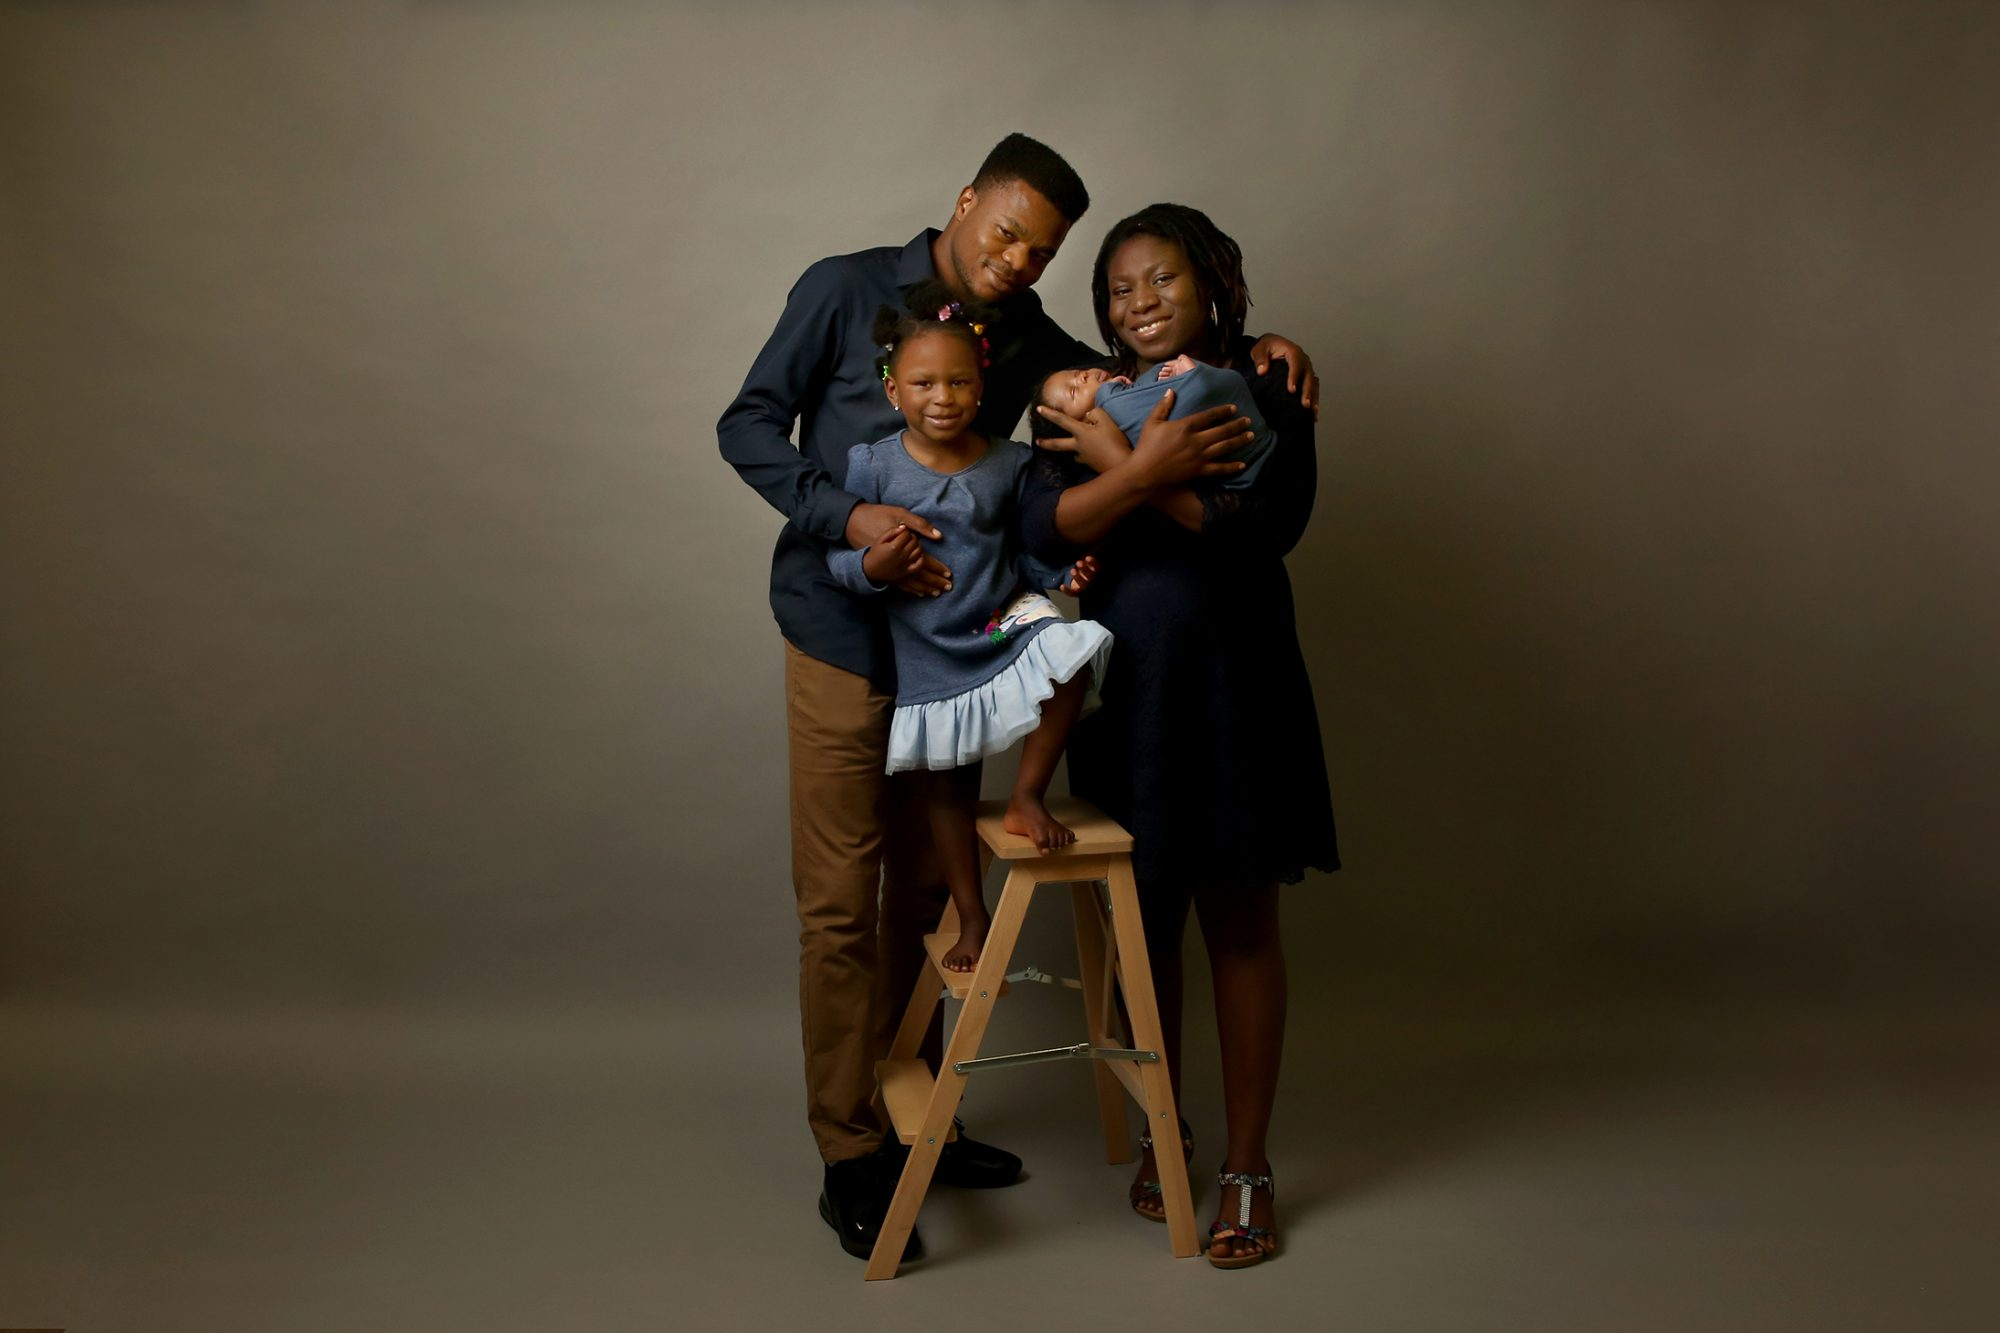 a nigerian mother holding a newborn baby boy and father holding daughter who is standing on wooden ladders